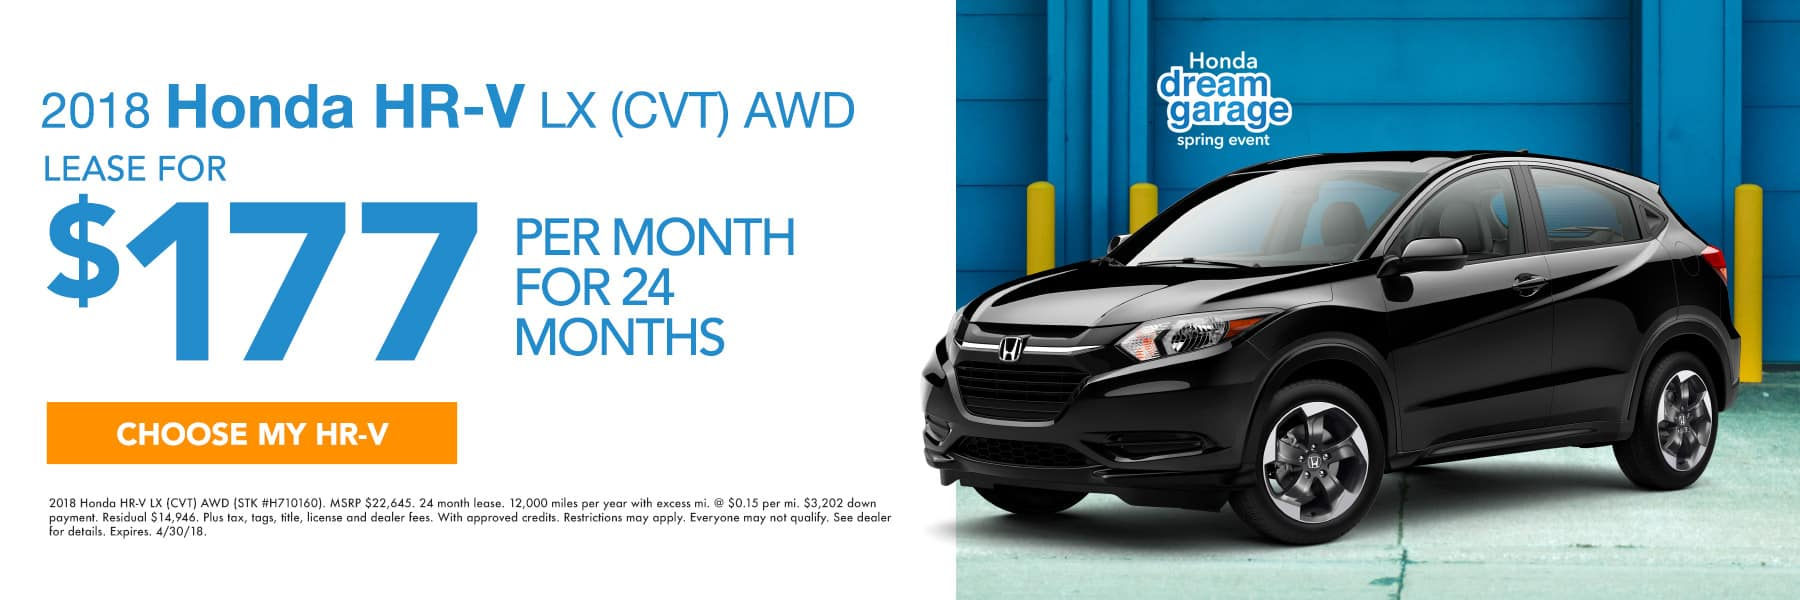 2018 Honda HR-V LX (CVT) AWD - Lease For $177 Per Month For 24 Months - Choose My HR-V - Expires 4/30/2018